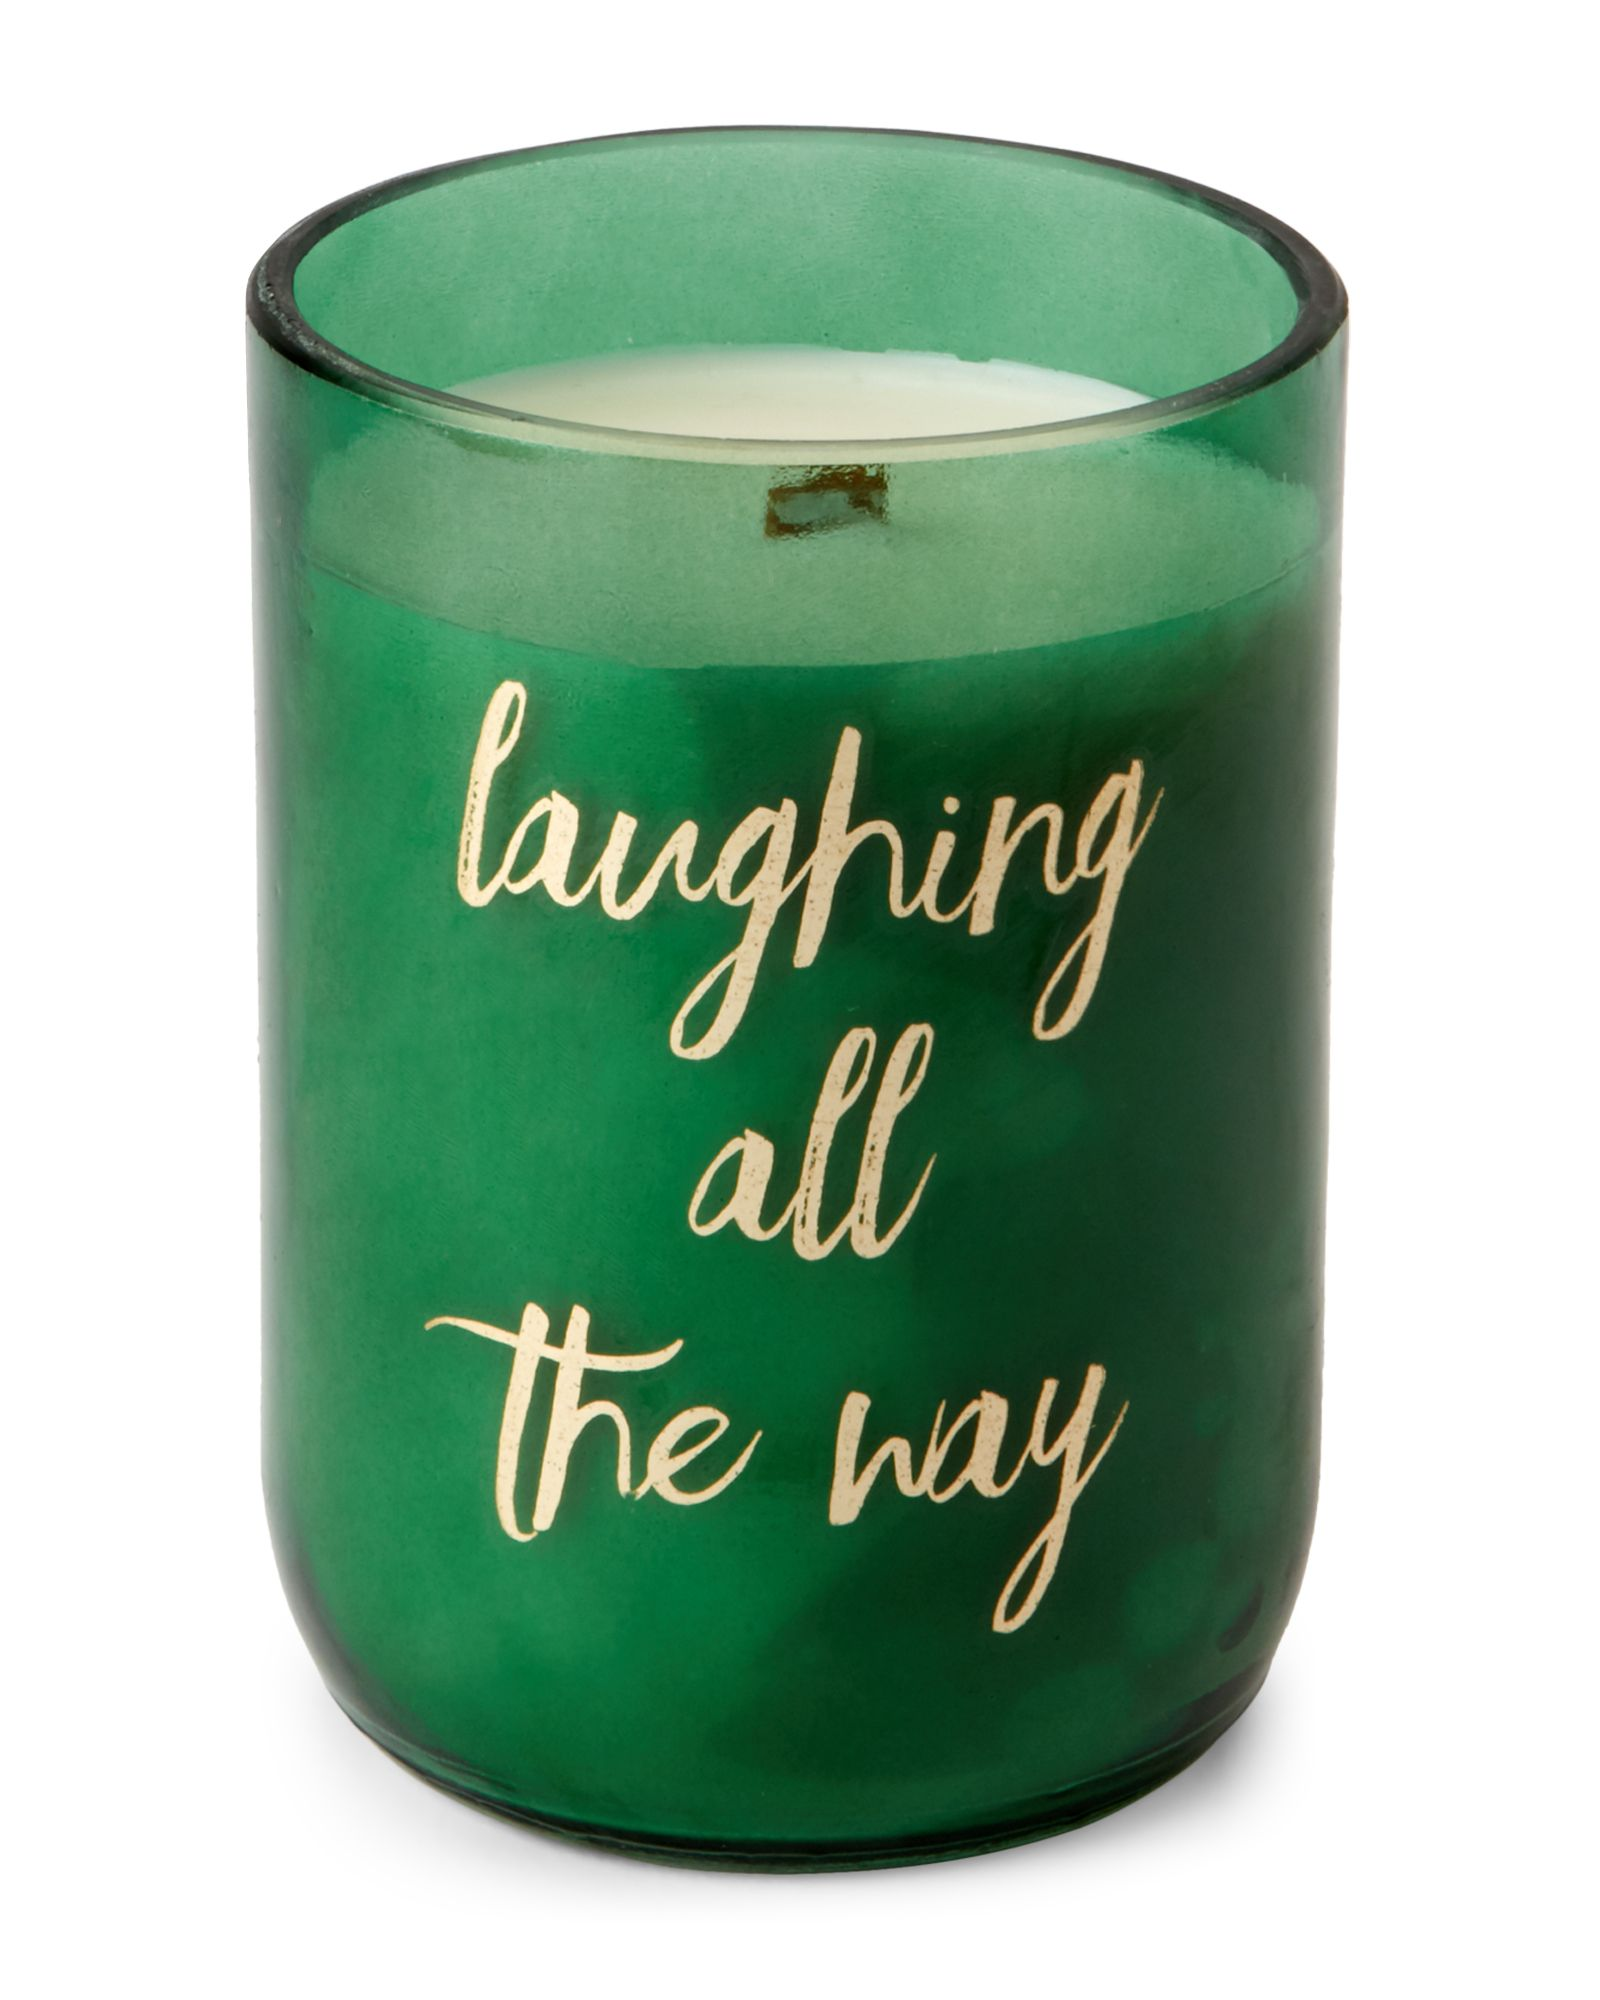 Balsam Fir Holiday Cheer Candle